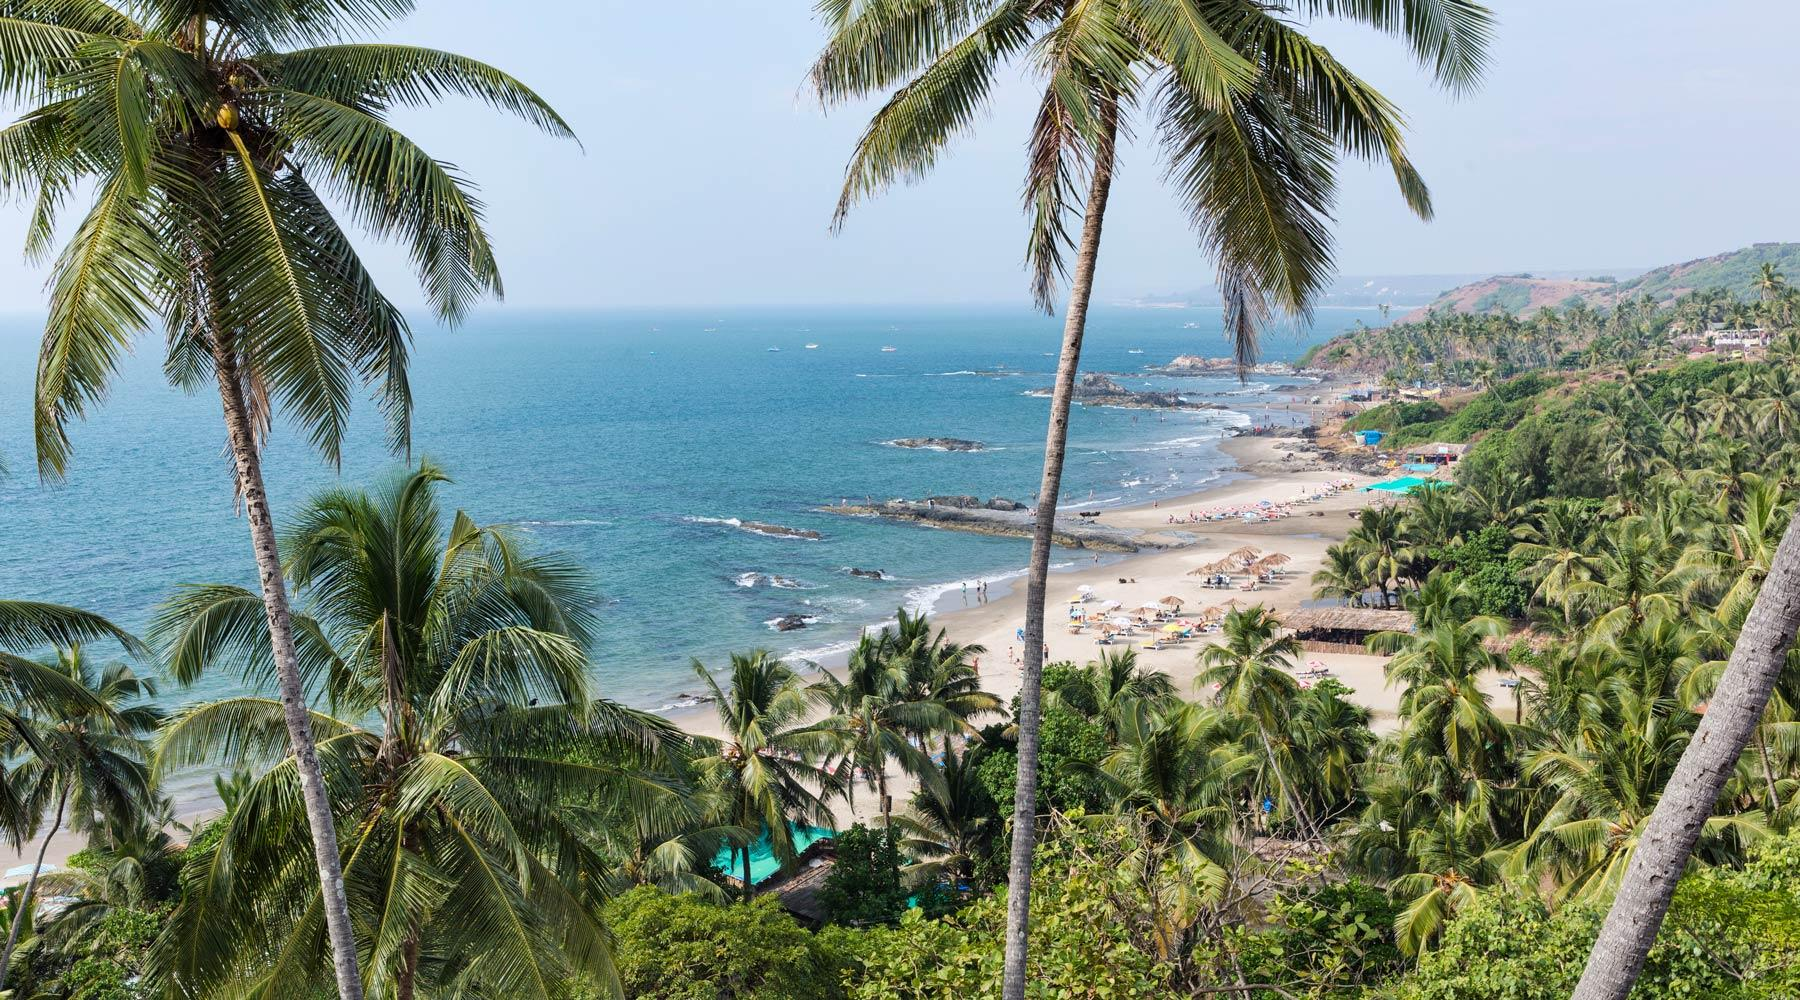 Bespoke holidays in India with a Beach Stay